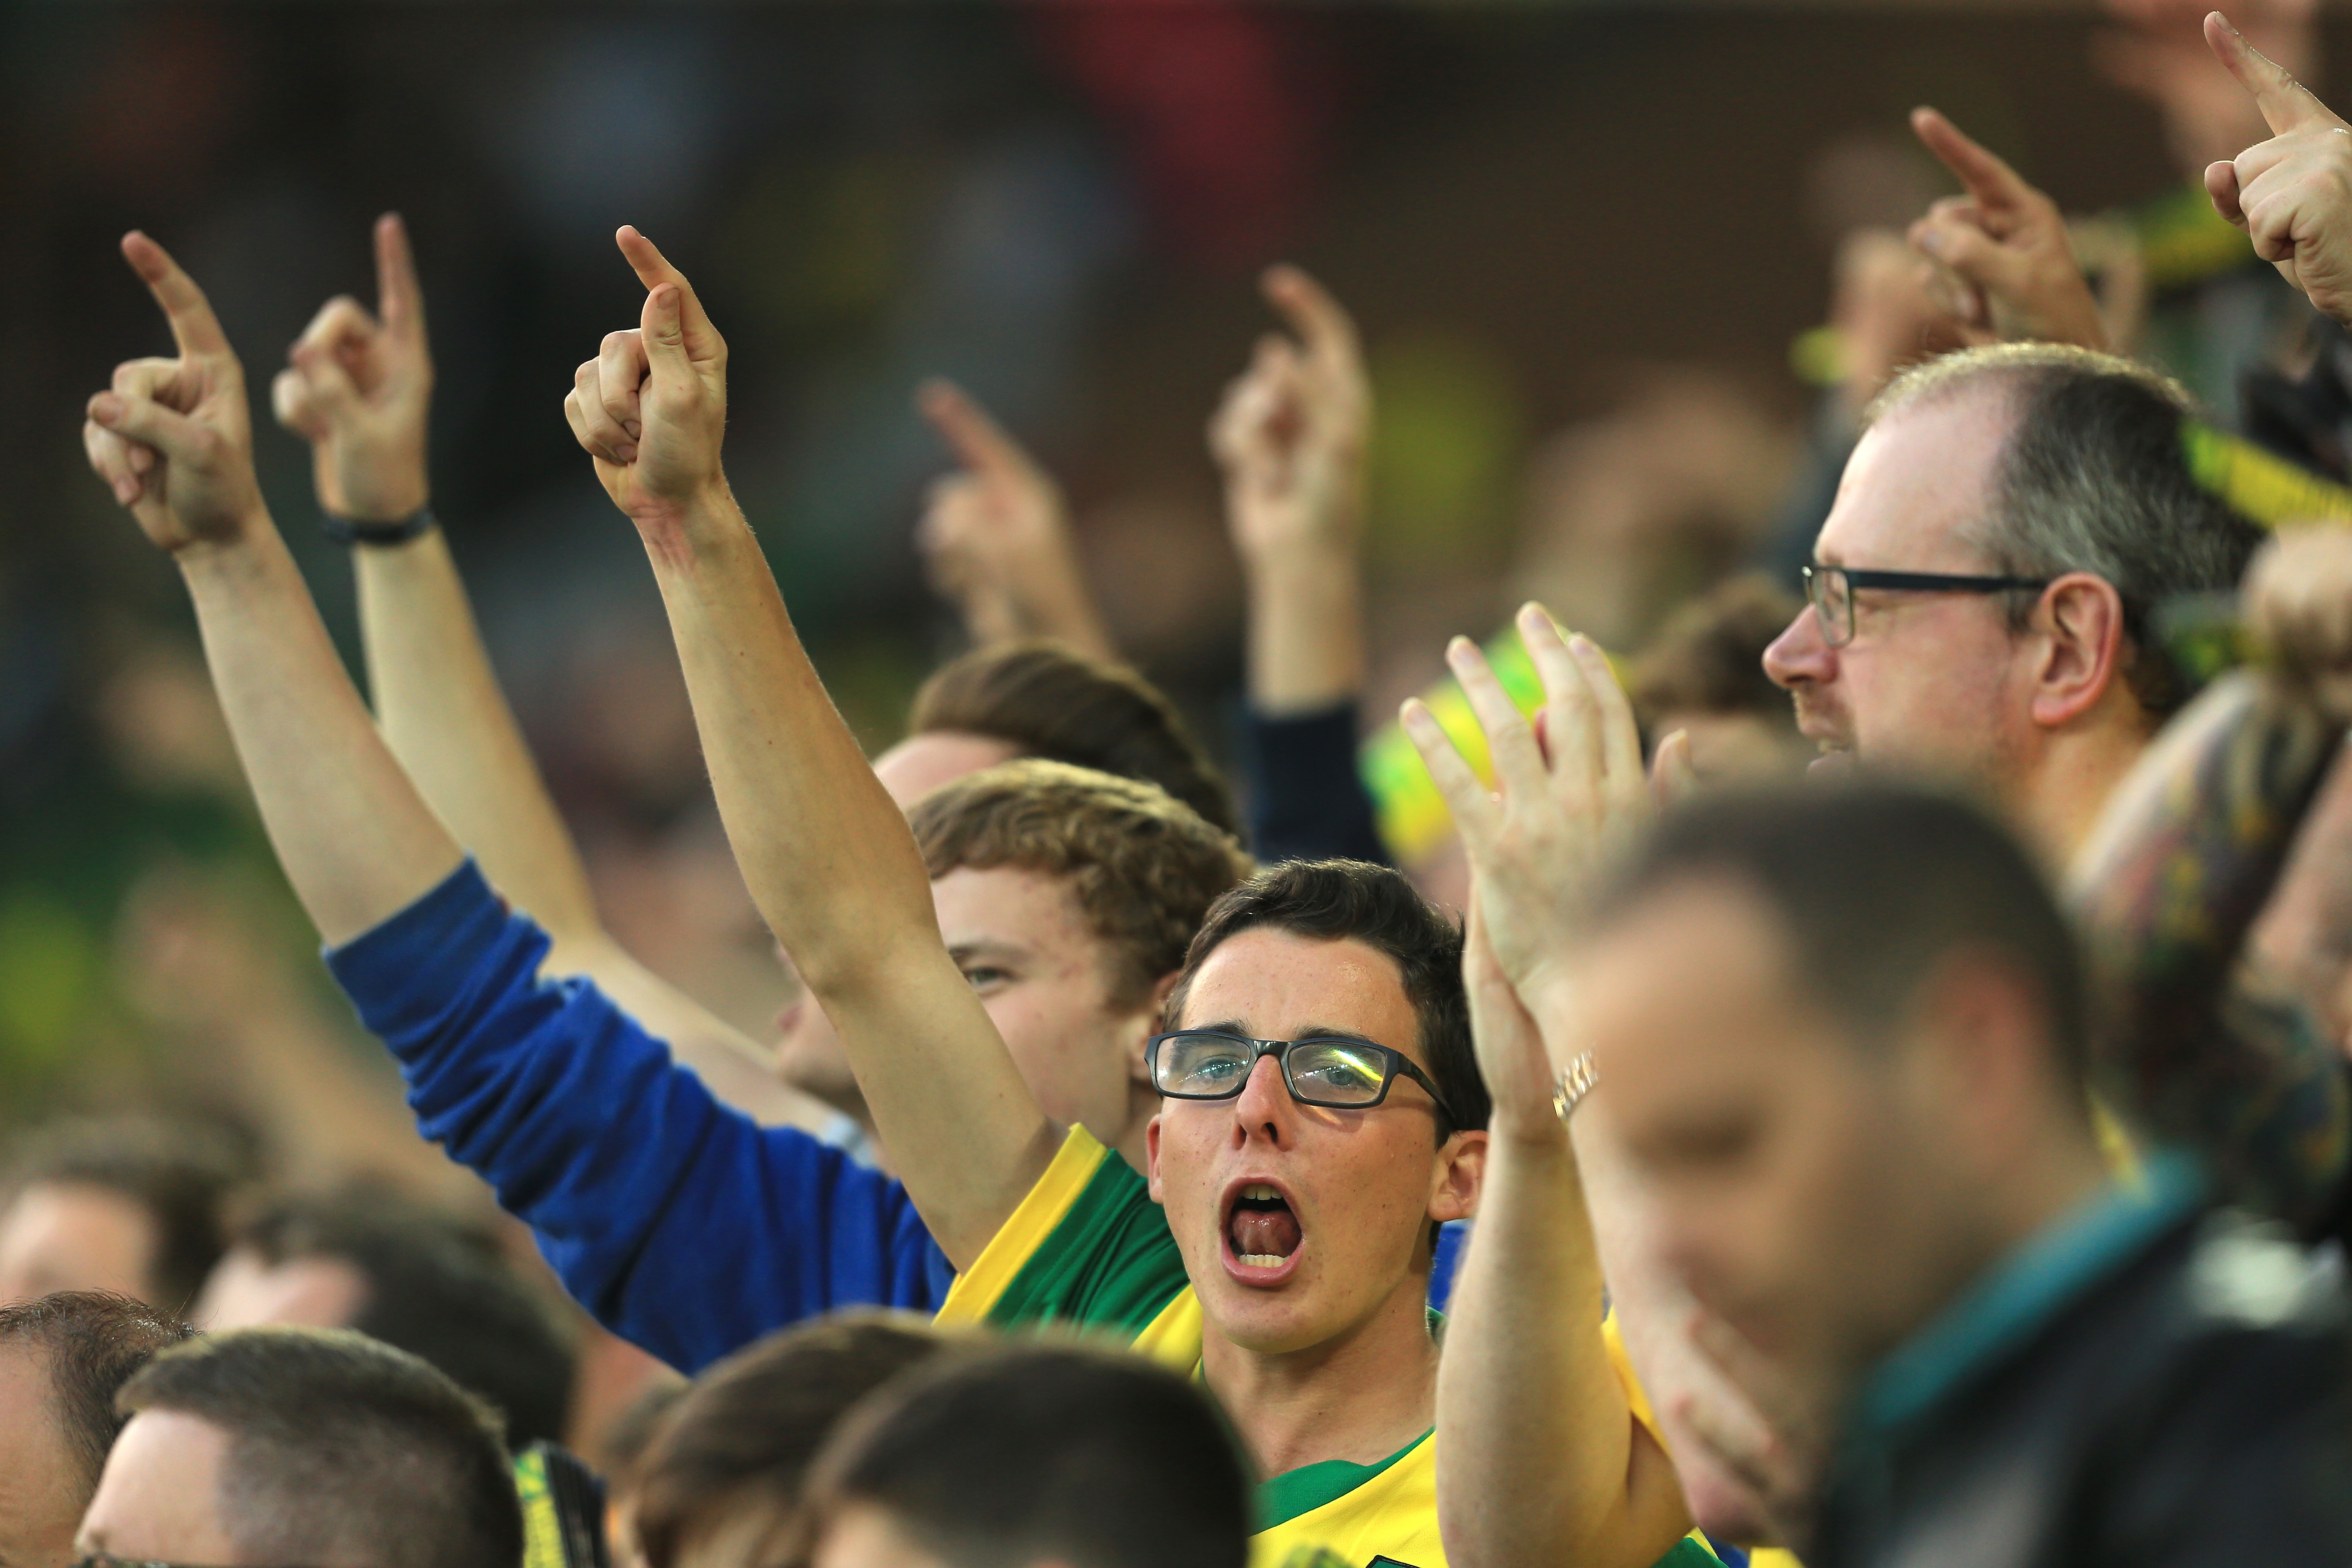 Class: Norwich City emphatically shut down fan who says LGBT pride has nothing to do with football